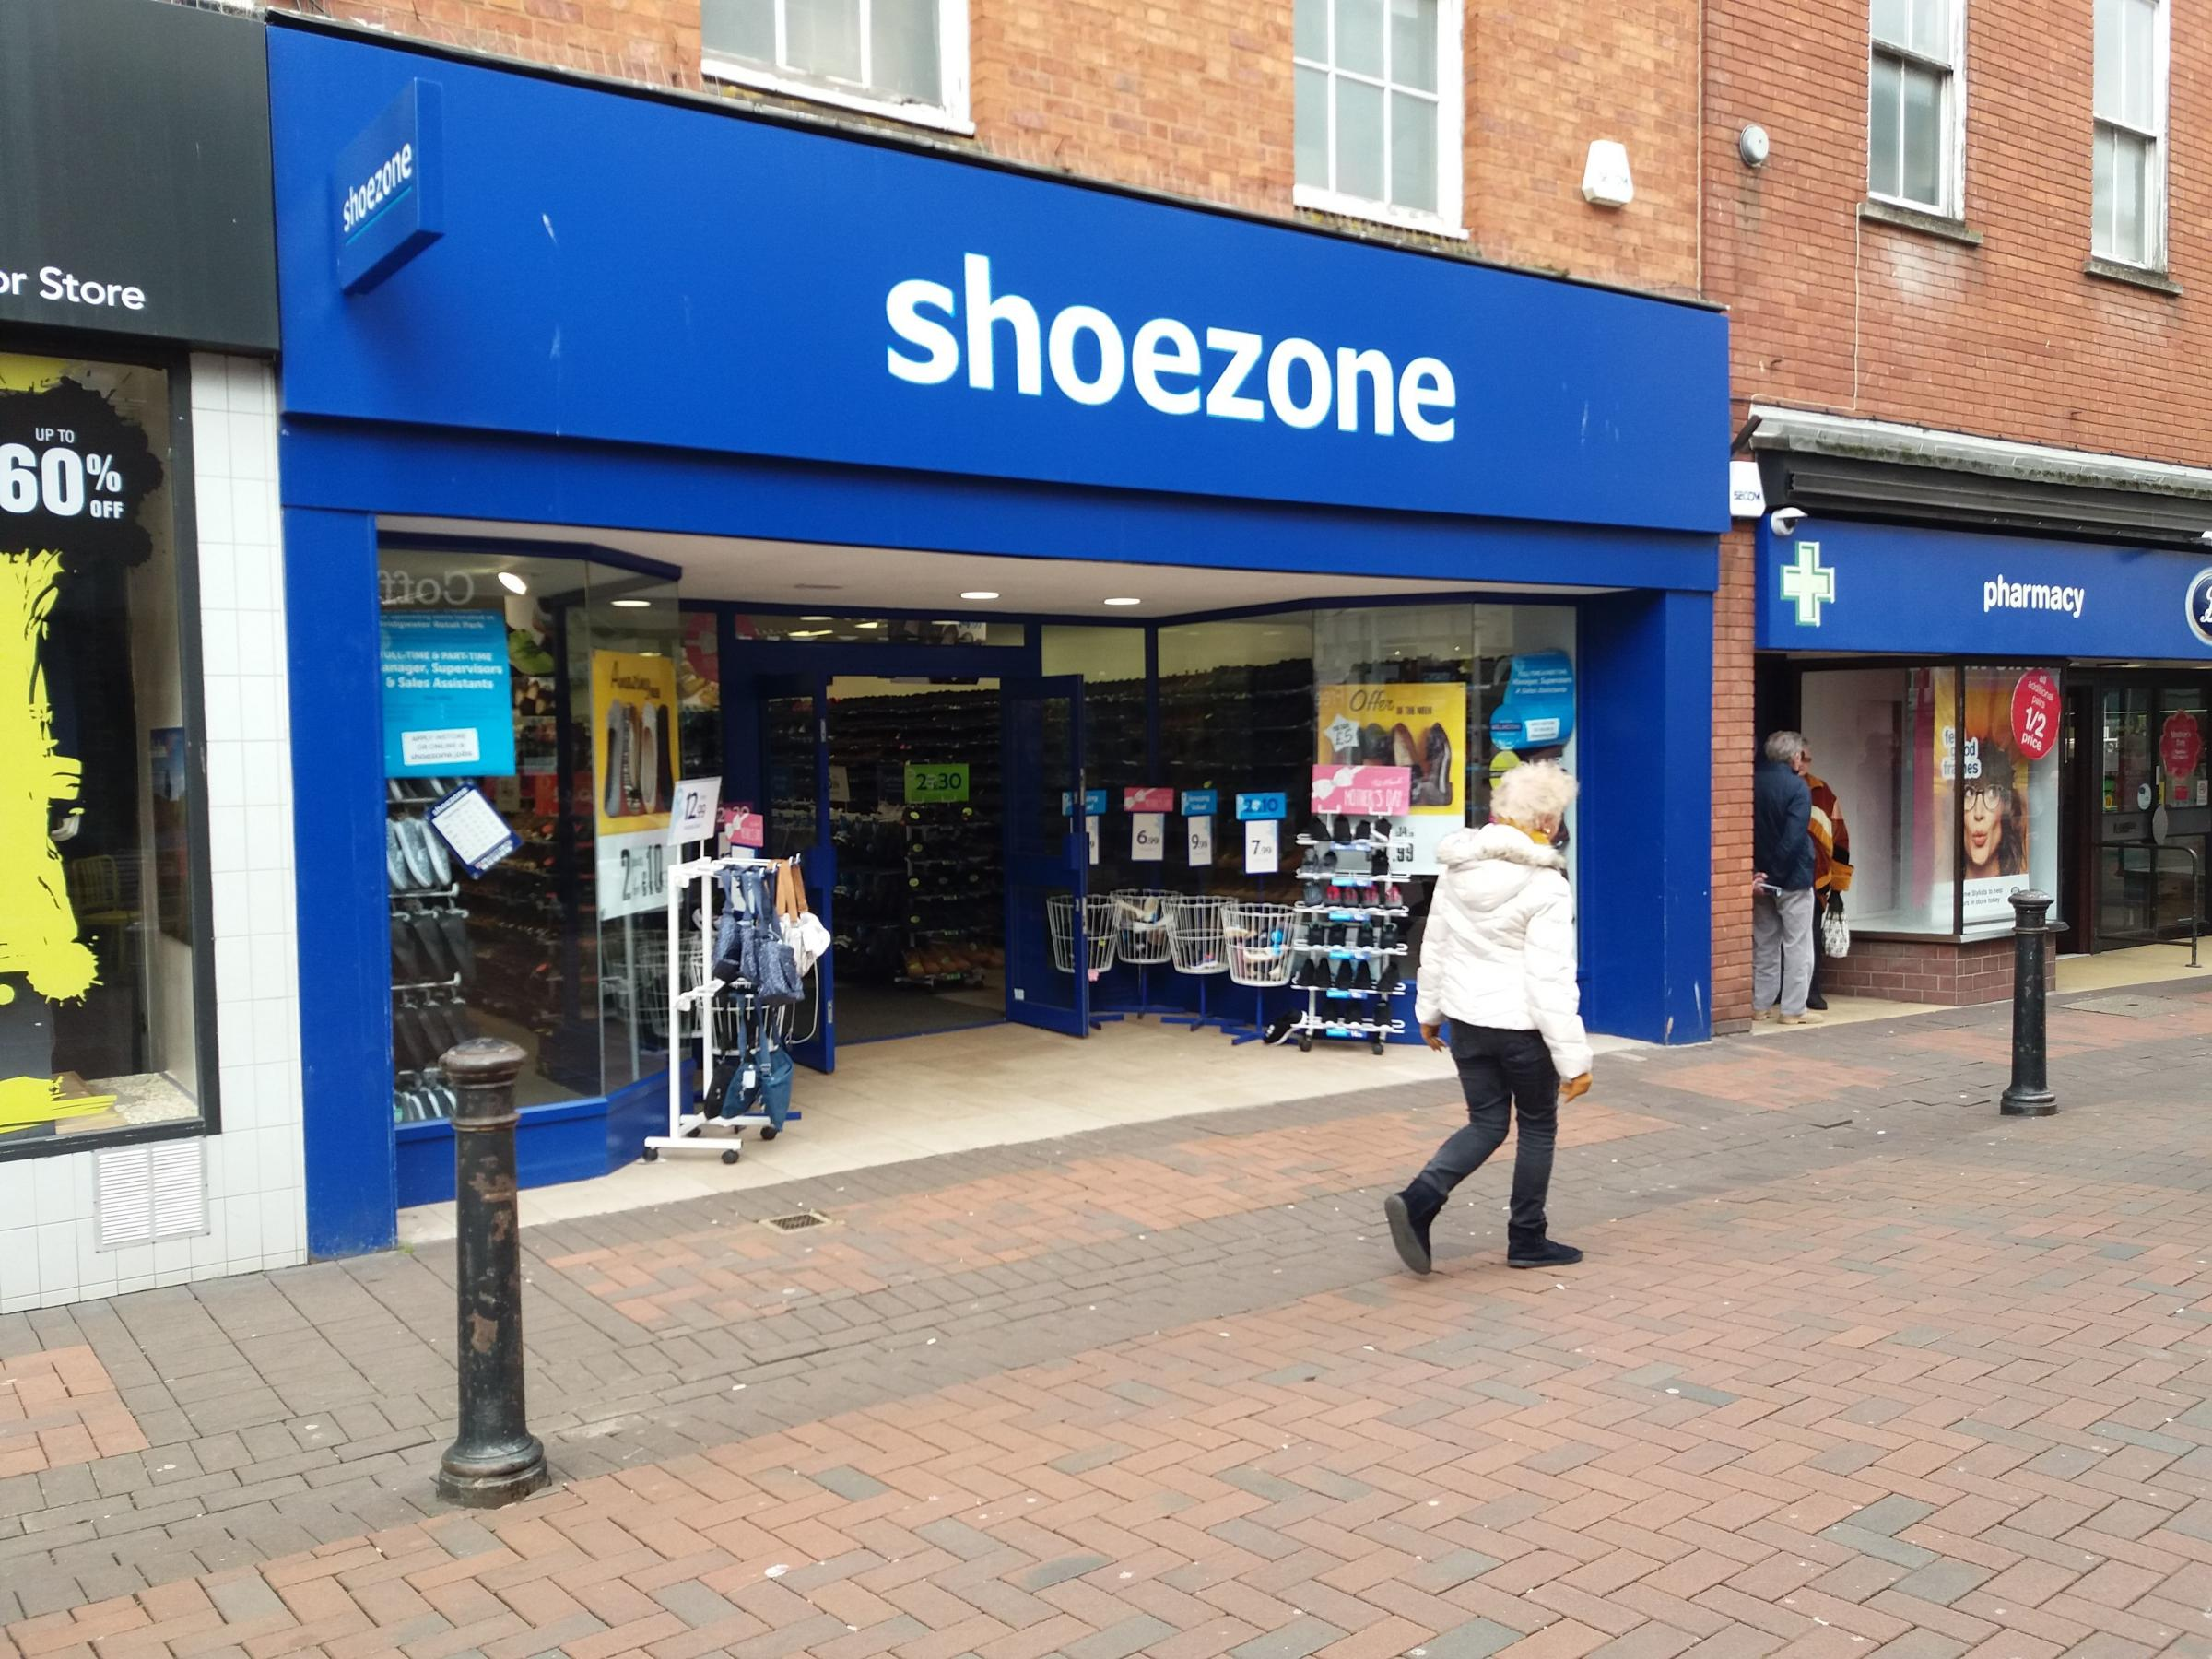 STAYING: The Shoe Zone in Fore Street is staying - despite plans for the company to open a second larger store at Bridgwater retail park